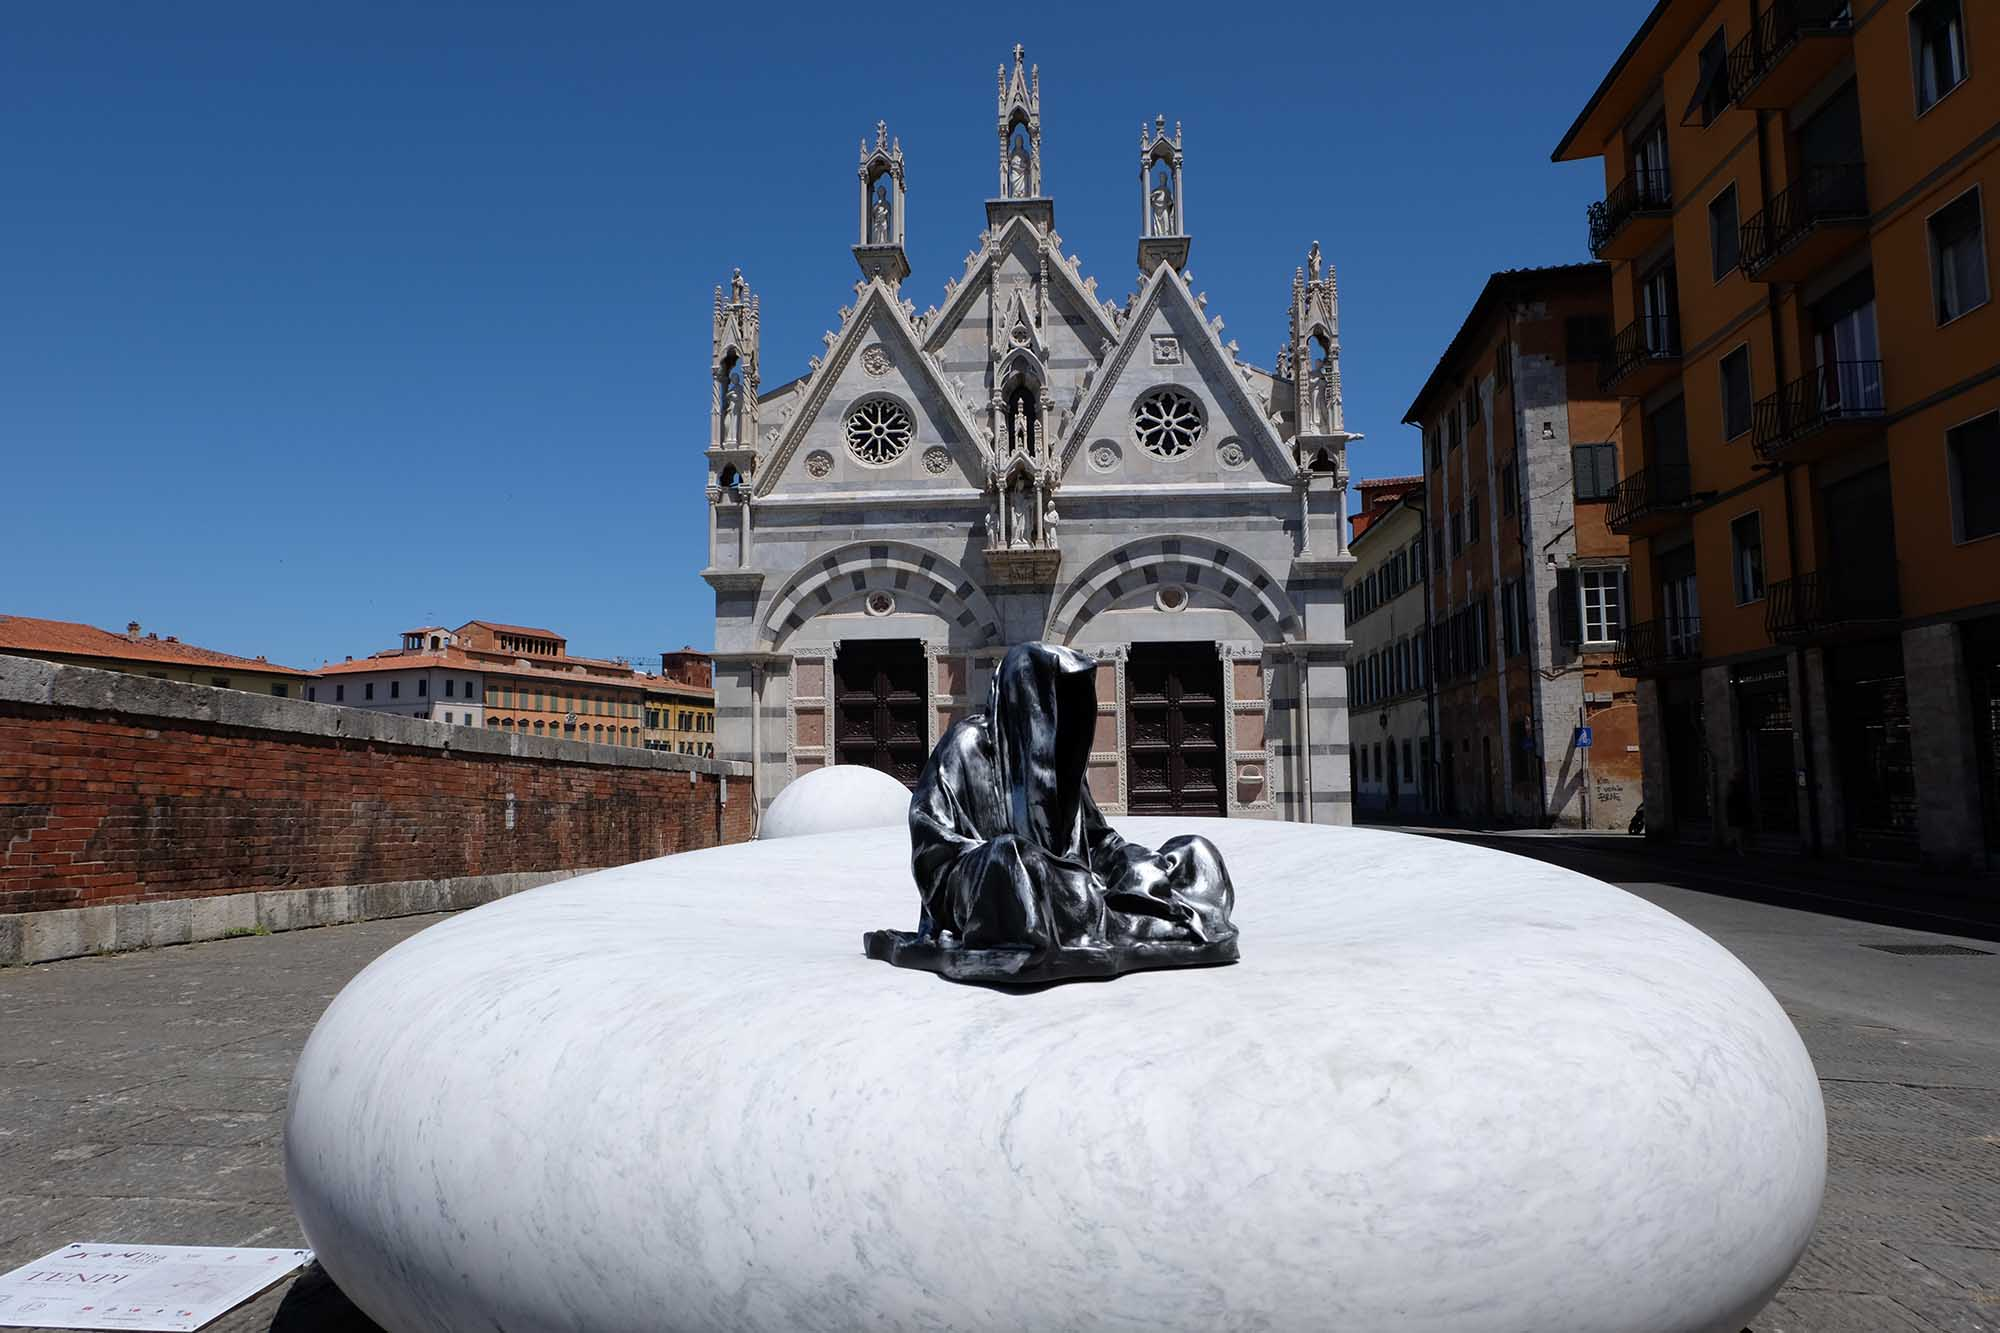 leaning tower of pisa italia guardians of time manfred kielnhofer contemporary fine art modern statue exclusive arts sculpture 3390